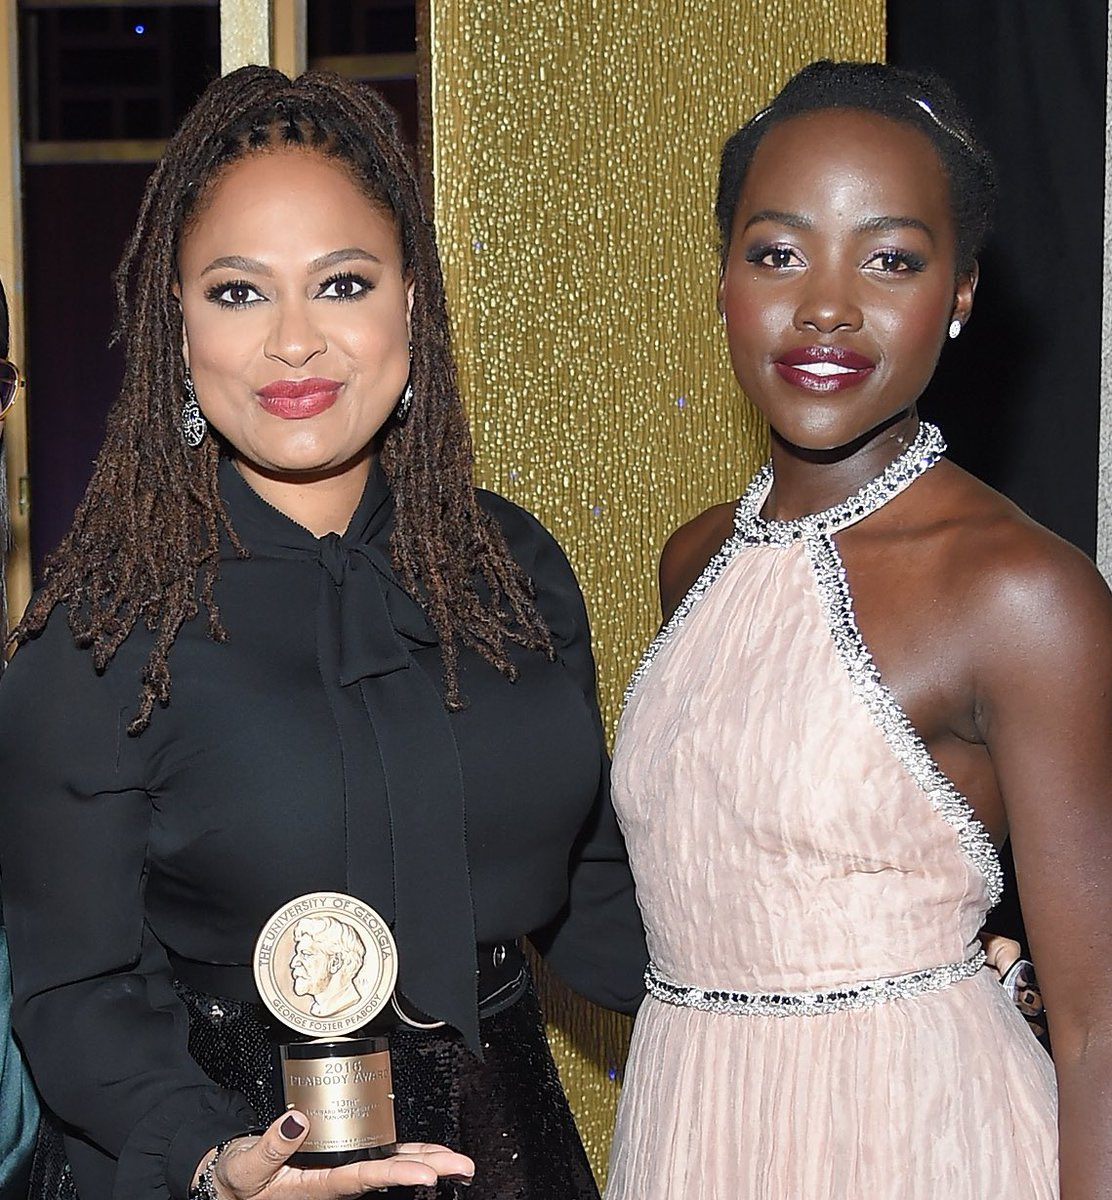 #WCW to @Ava! Magnificent to witness this trailblazer. What a year for you and it has only just begun!